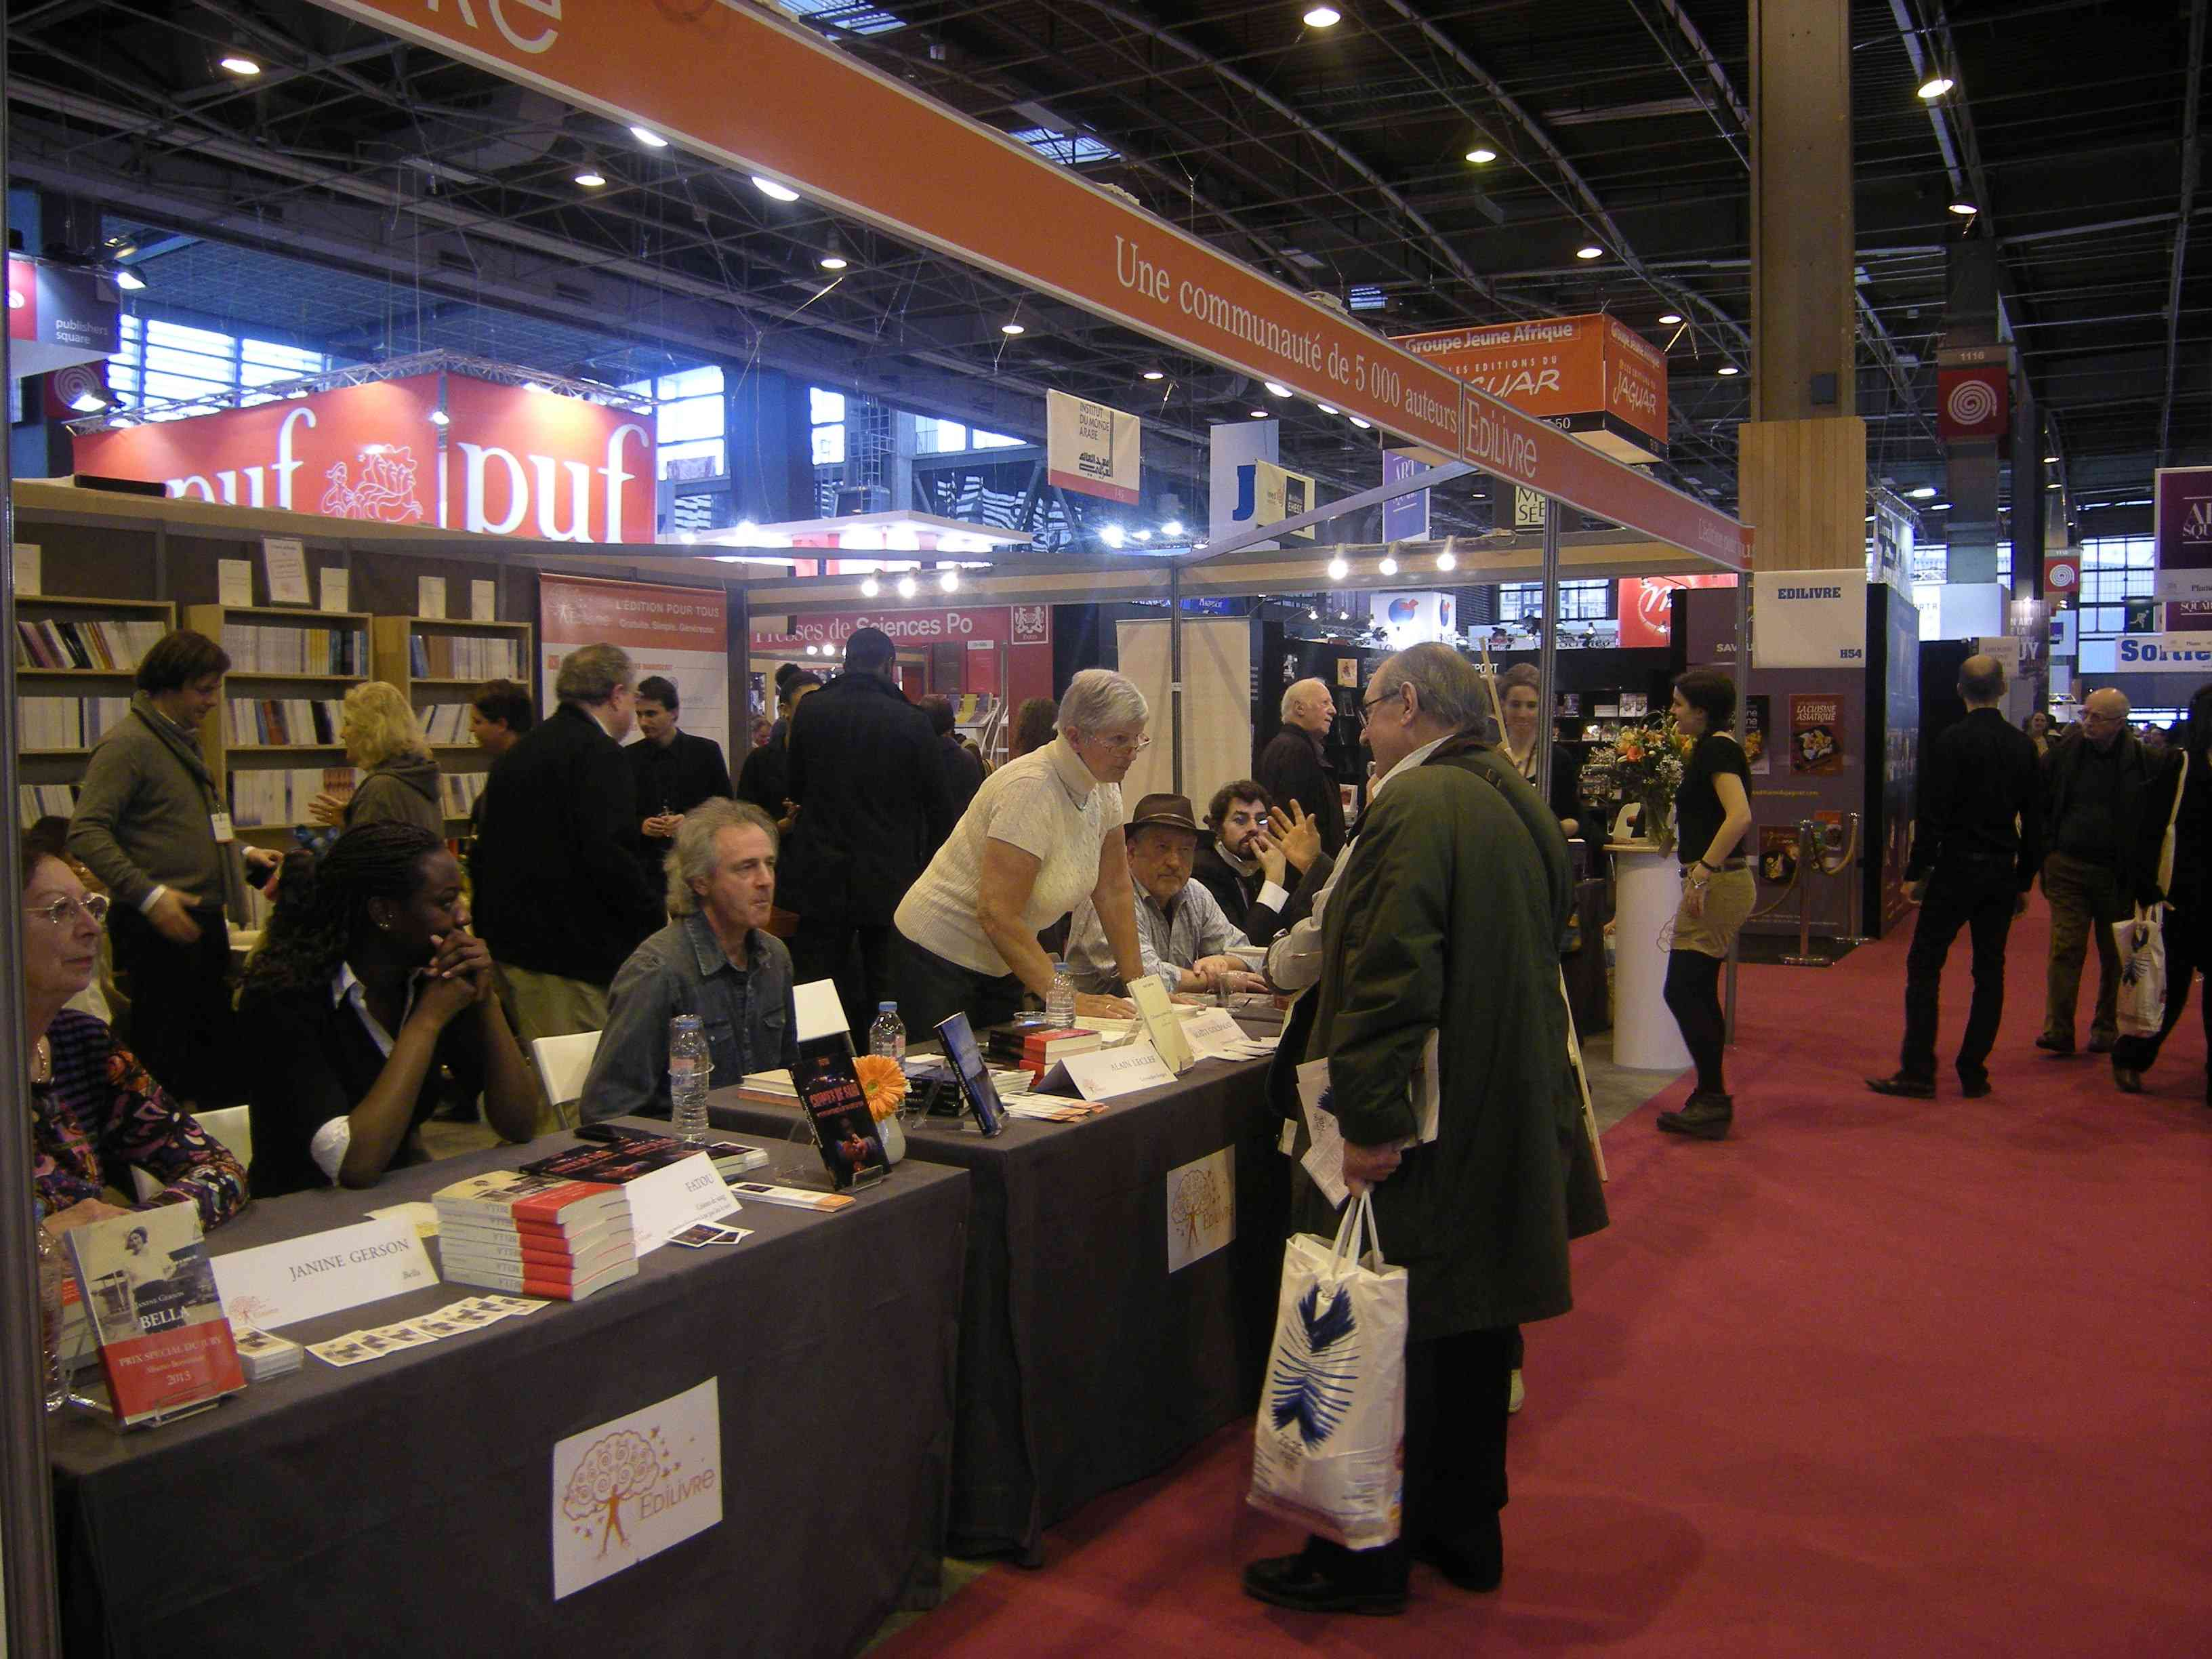 Salon du livre de paris edilivre 10 l 39 actualit edilivre for 10 best audiobooks of 2013 salon